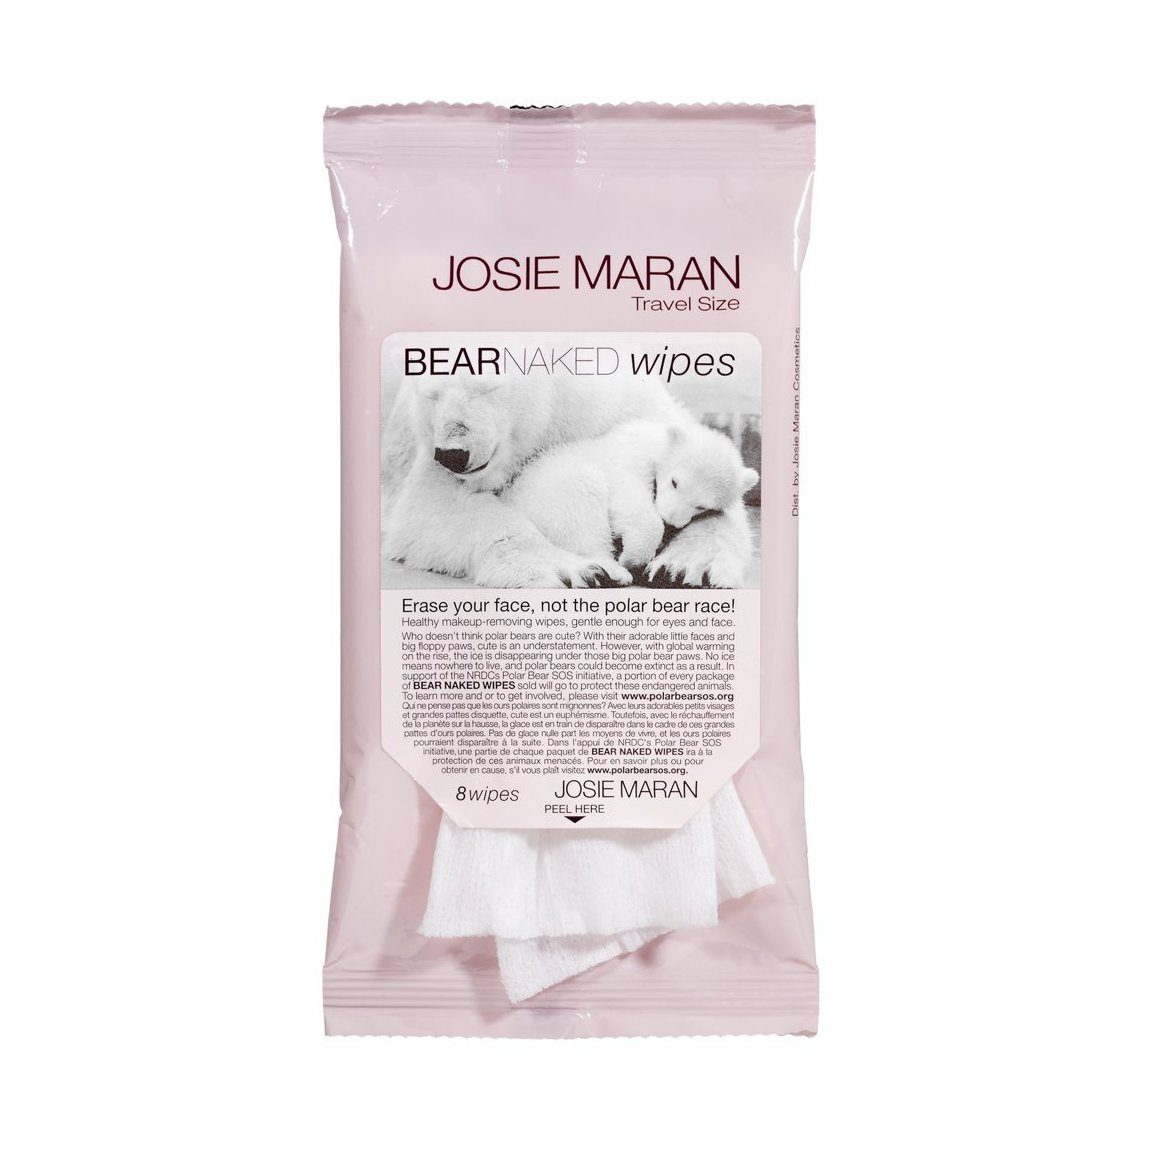 josie-maran-bear-naked-wipes-travel-size.jpg